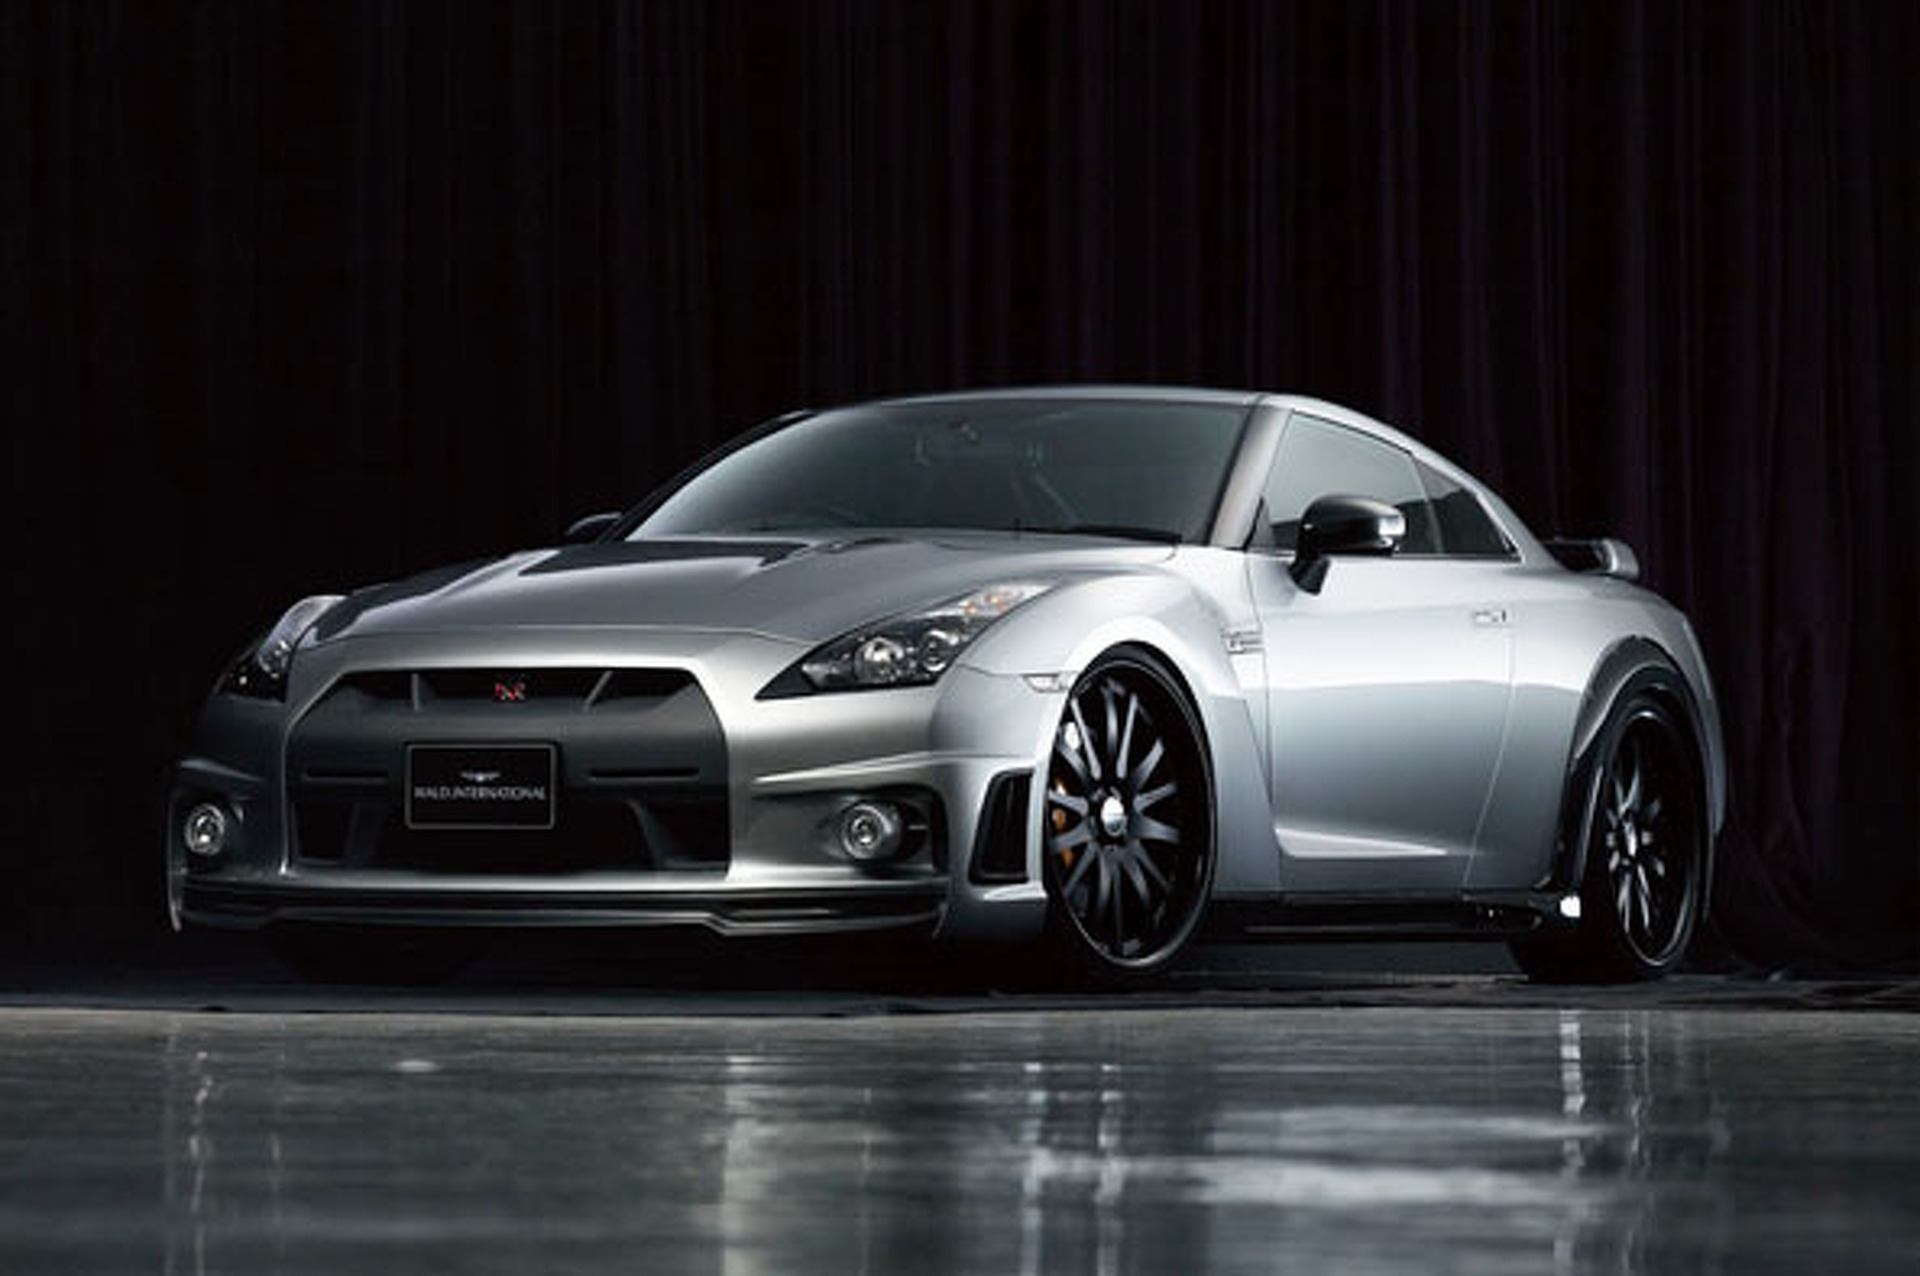 5 Reasons why the Nissan GT-R is the Undisputed Tuner Champ